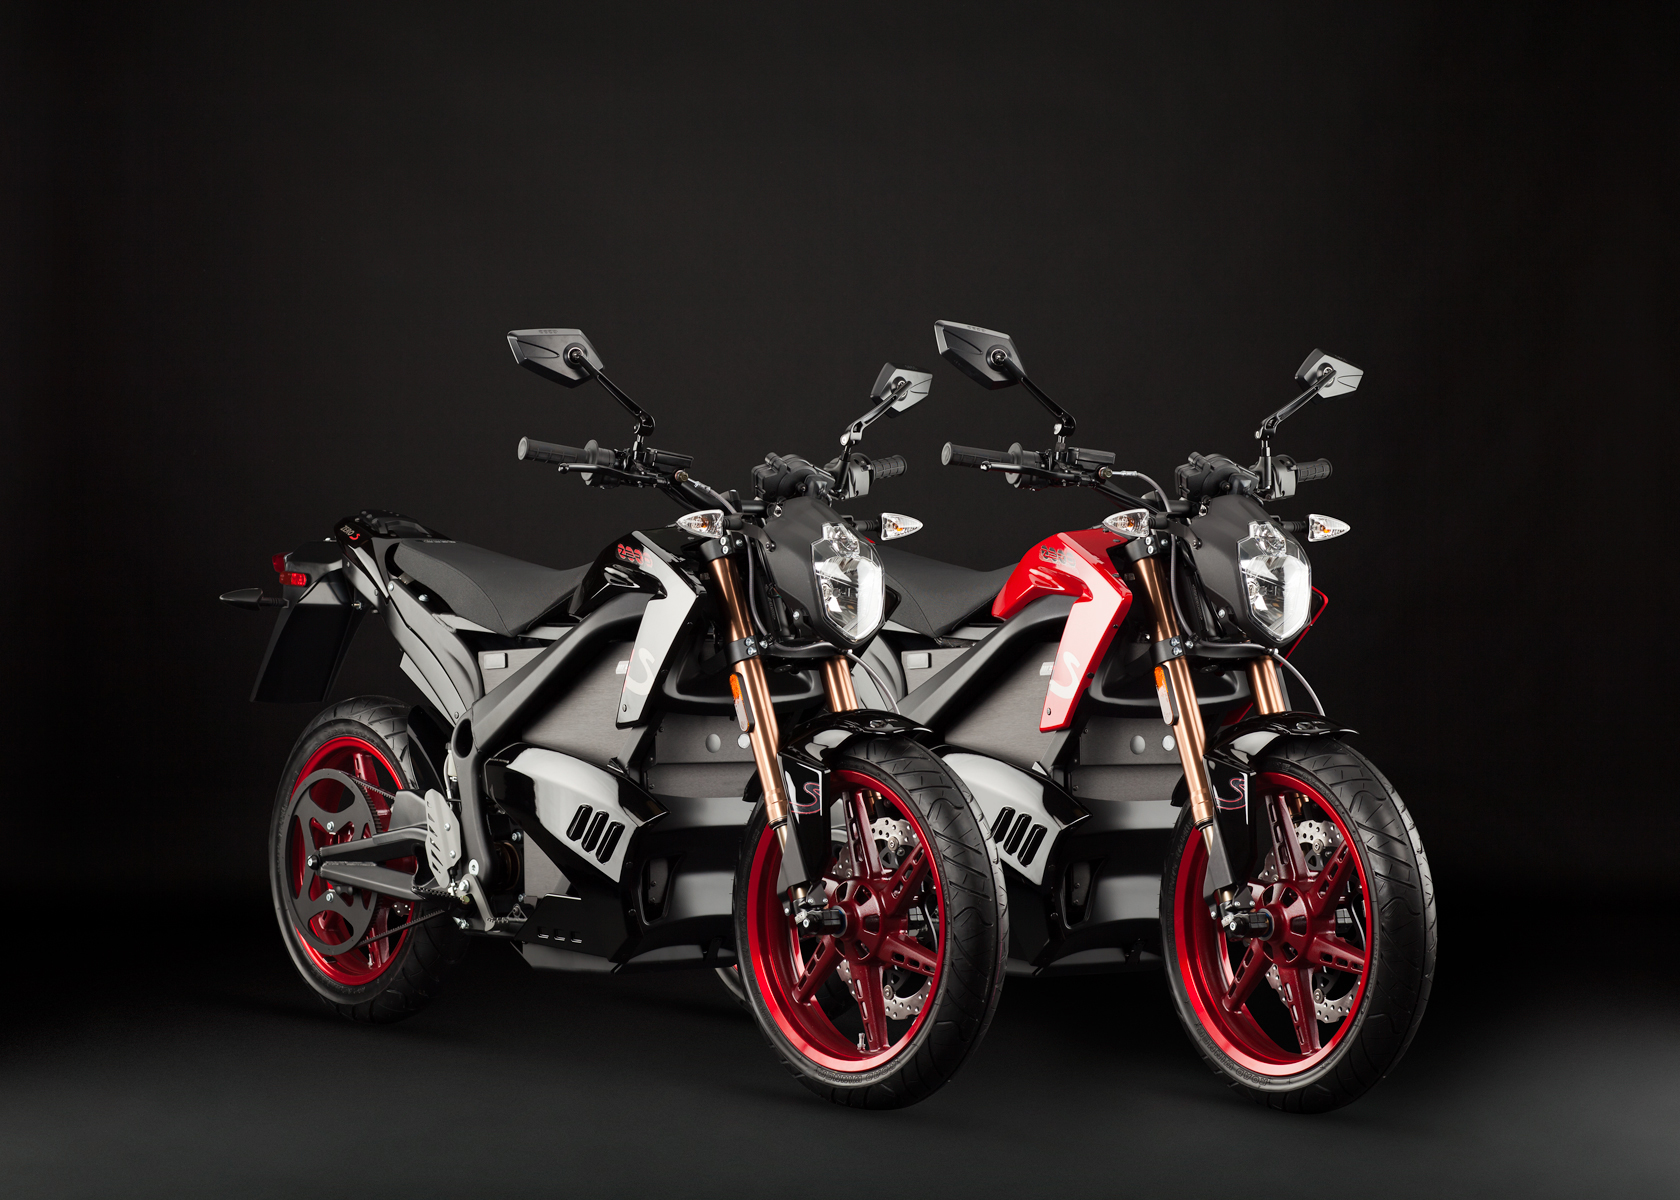 2012 Zero S Electric Motorcycle: Pair, Black and Red